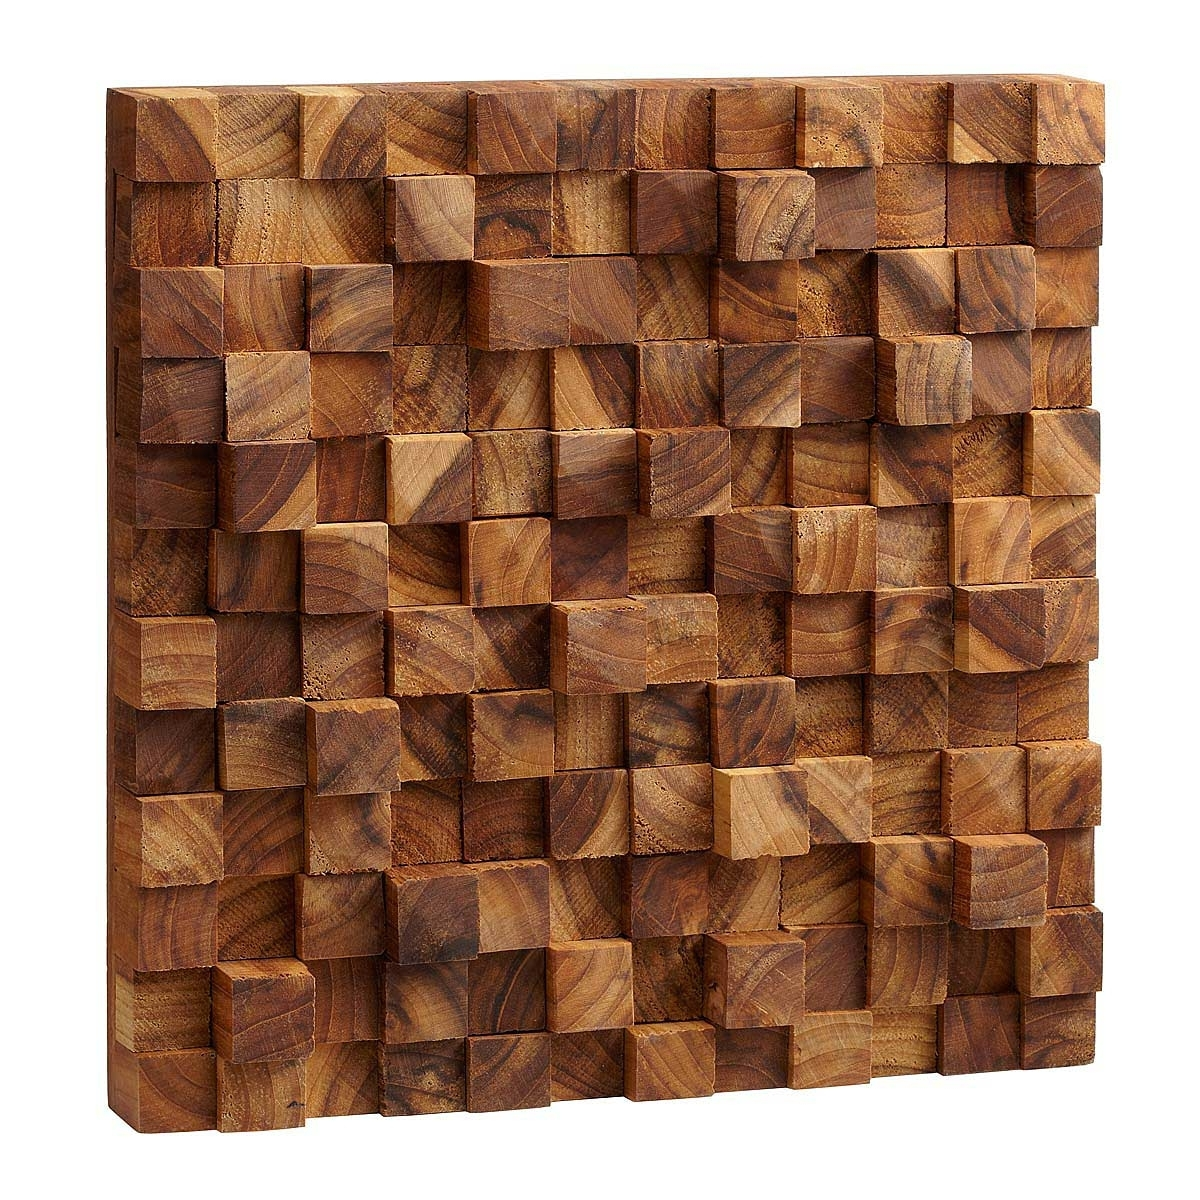 Uncommongoods in Trendy Wooden Wall Art